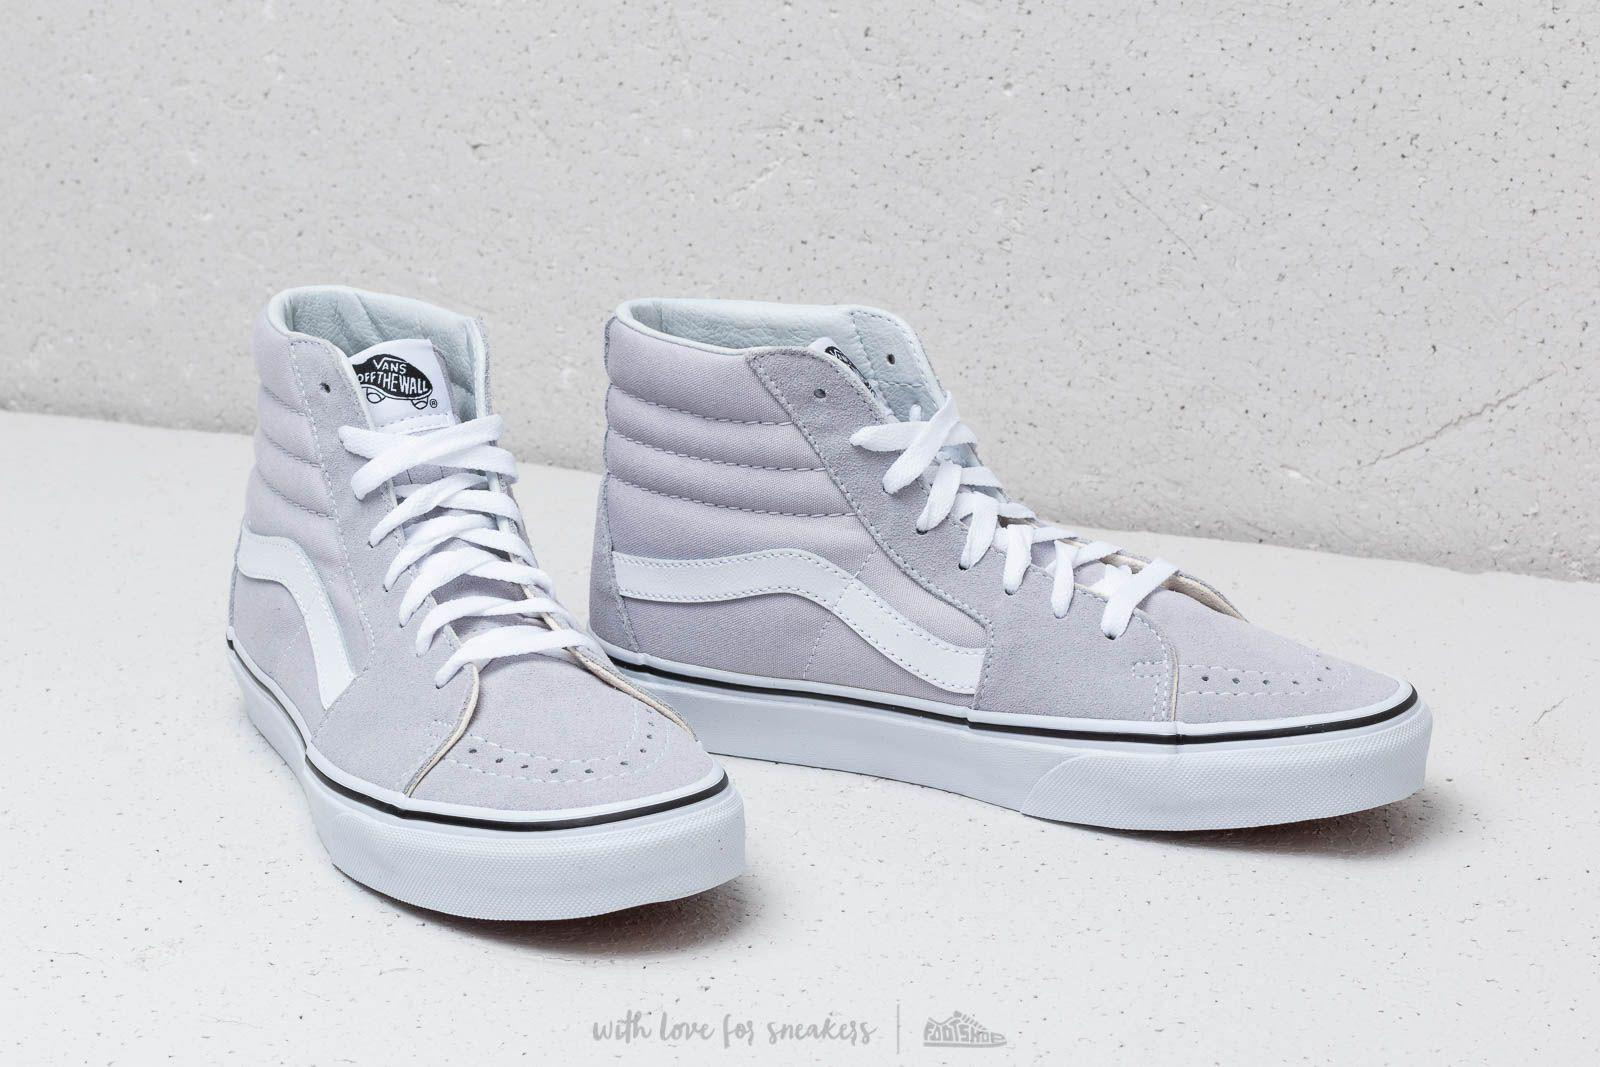 d31fc422d1e3a6 Lyst - Vans Sk8-hi Gray Dawn  True White in White for Men